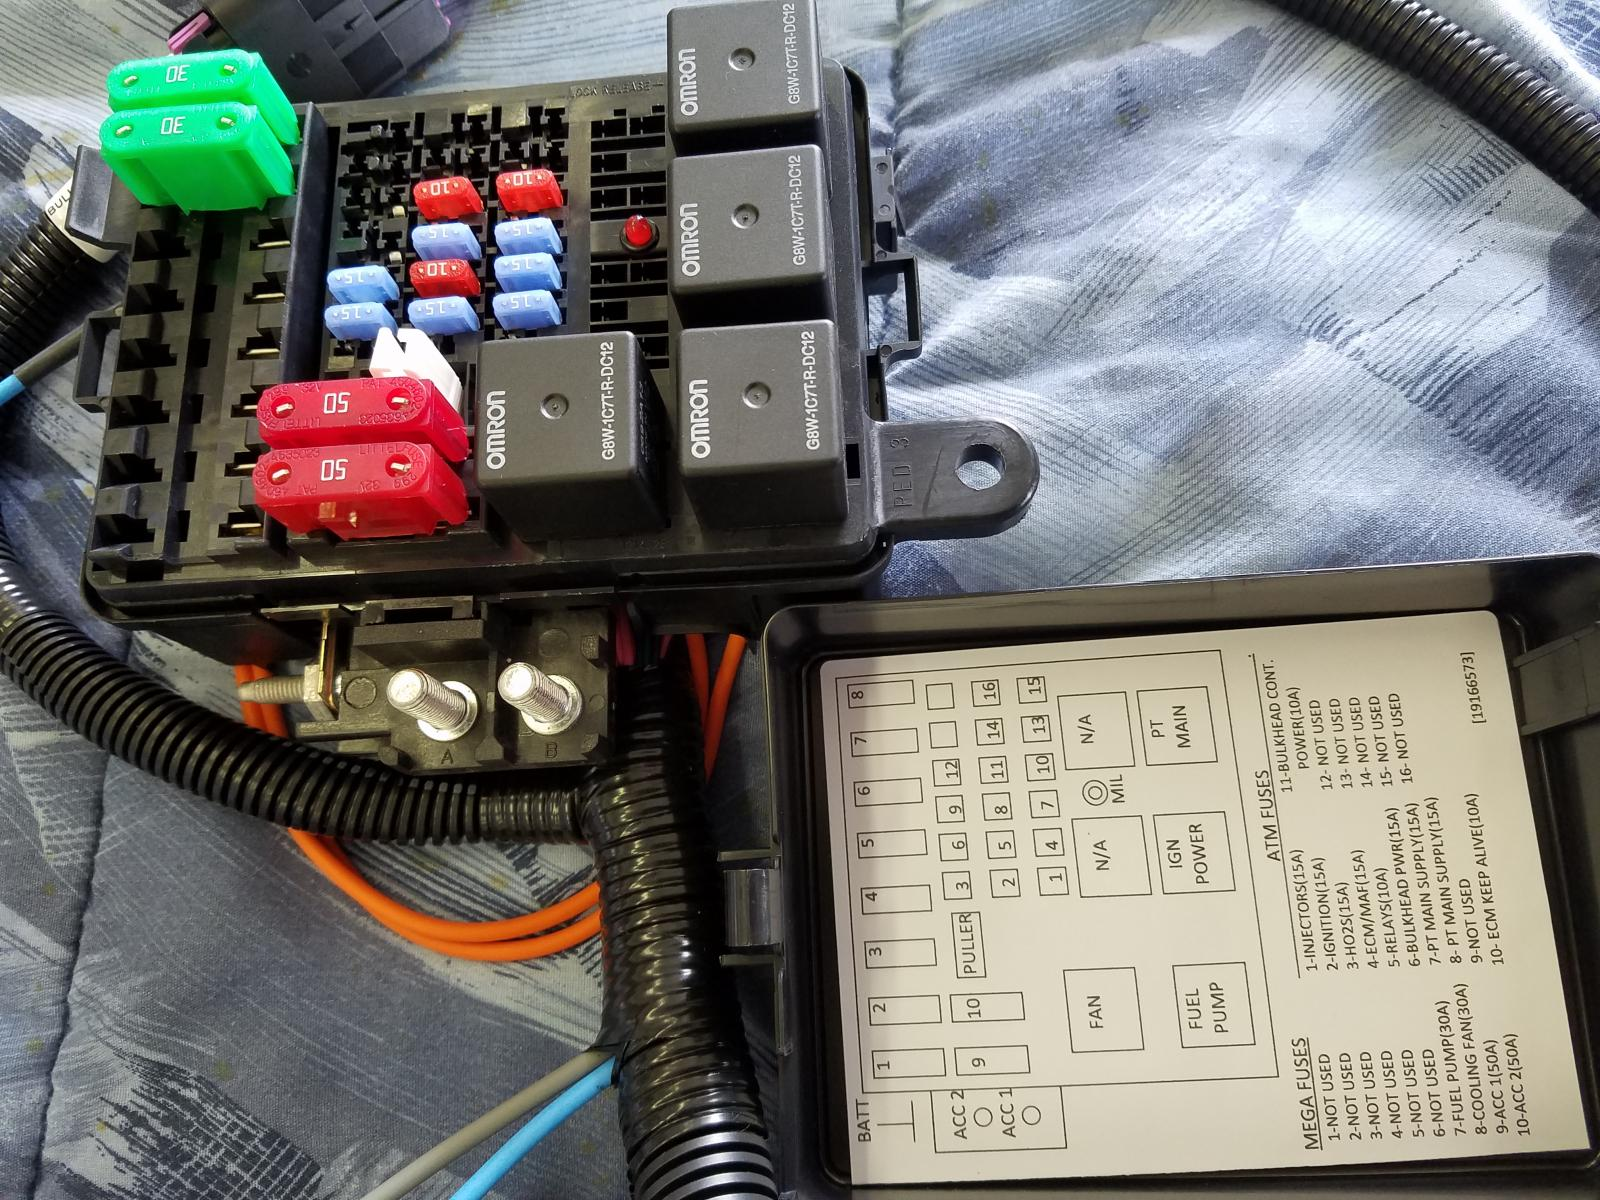 GMPP Harness with Vintage Air and Dual Electric Fans?? on remote control wiring diagram, relays wiring diagram, modem wiring diagram, control panel wiring diagram, switches wiring diagram, exhaust fan wiring diagram, fan motor wiring diagram, actuator wiring diagram, resistor wiring diagram, fan switch wiring diagram, fan control wiring diagram, cpu fan wiring diagram, electric fan wiring diagram, centrifugal fan wiring diagram, fan capacitor wiring diagram, dimensions wiring diagram, fan remote wiring diagram, cooling fan wiring diagram, lights wiring diagram, case wiring diagram,